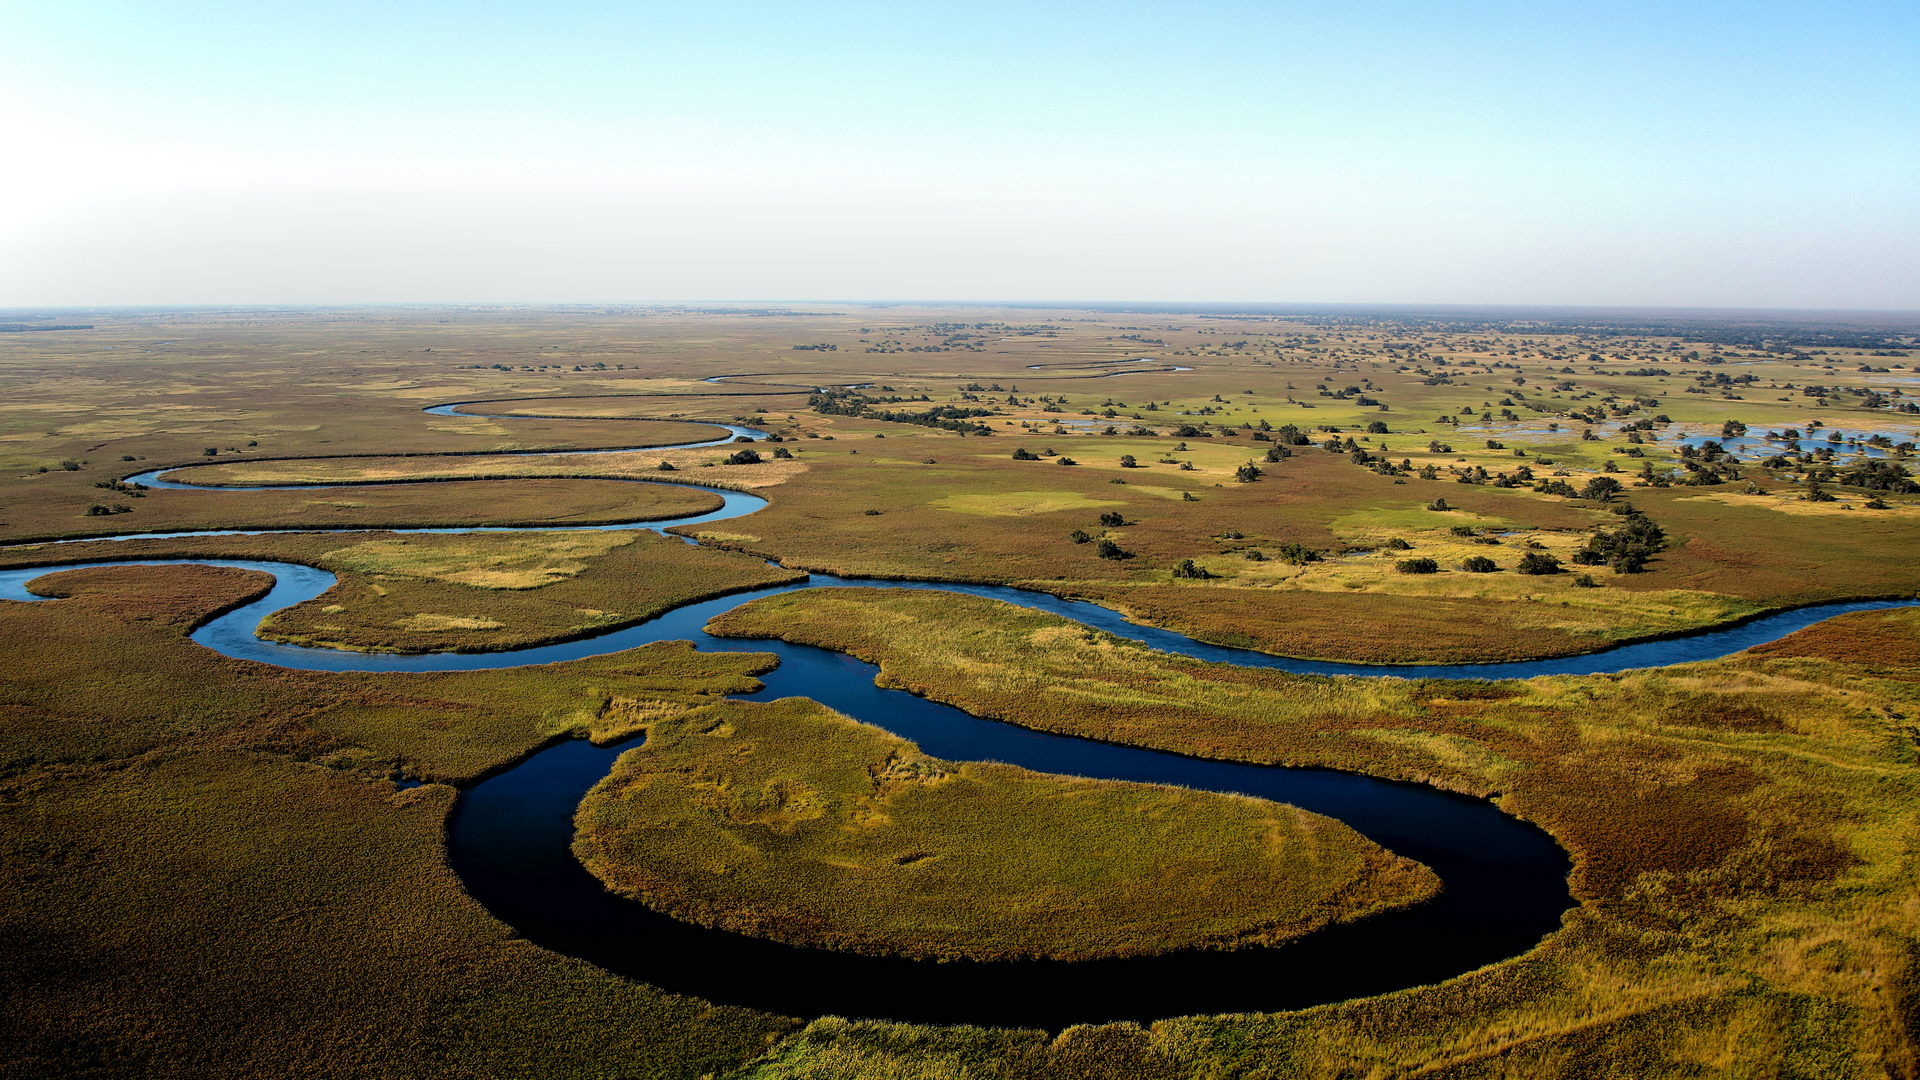 A view in Botswana